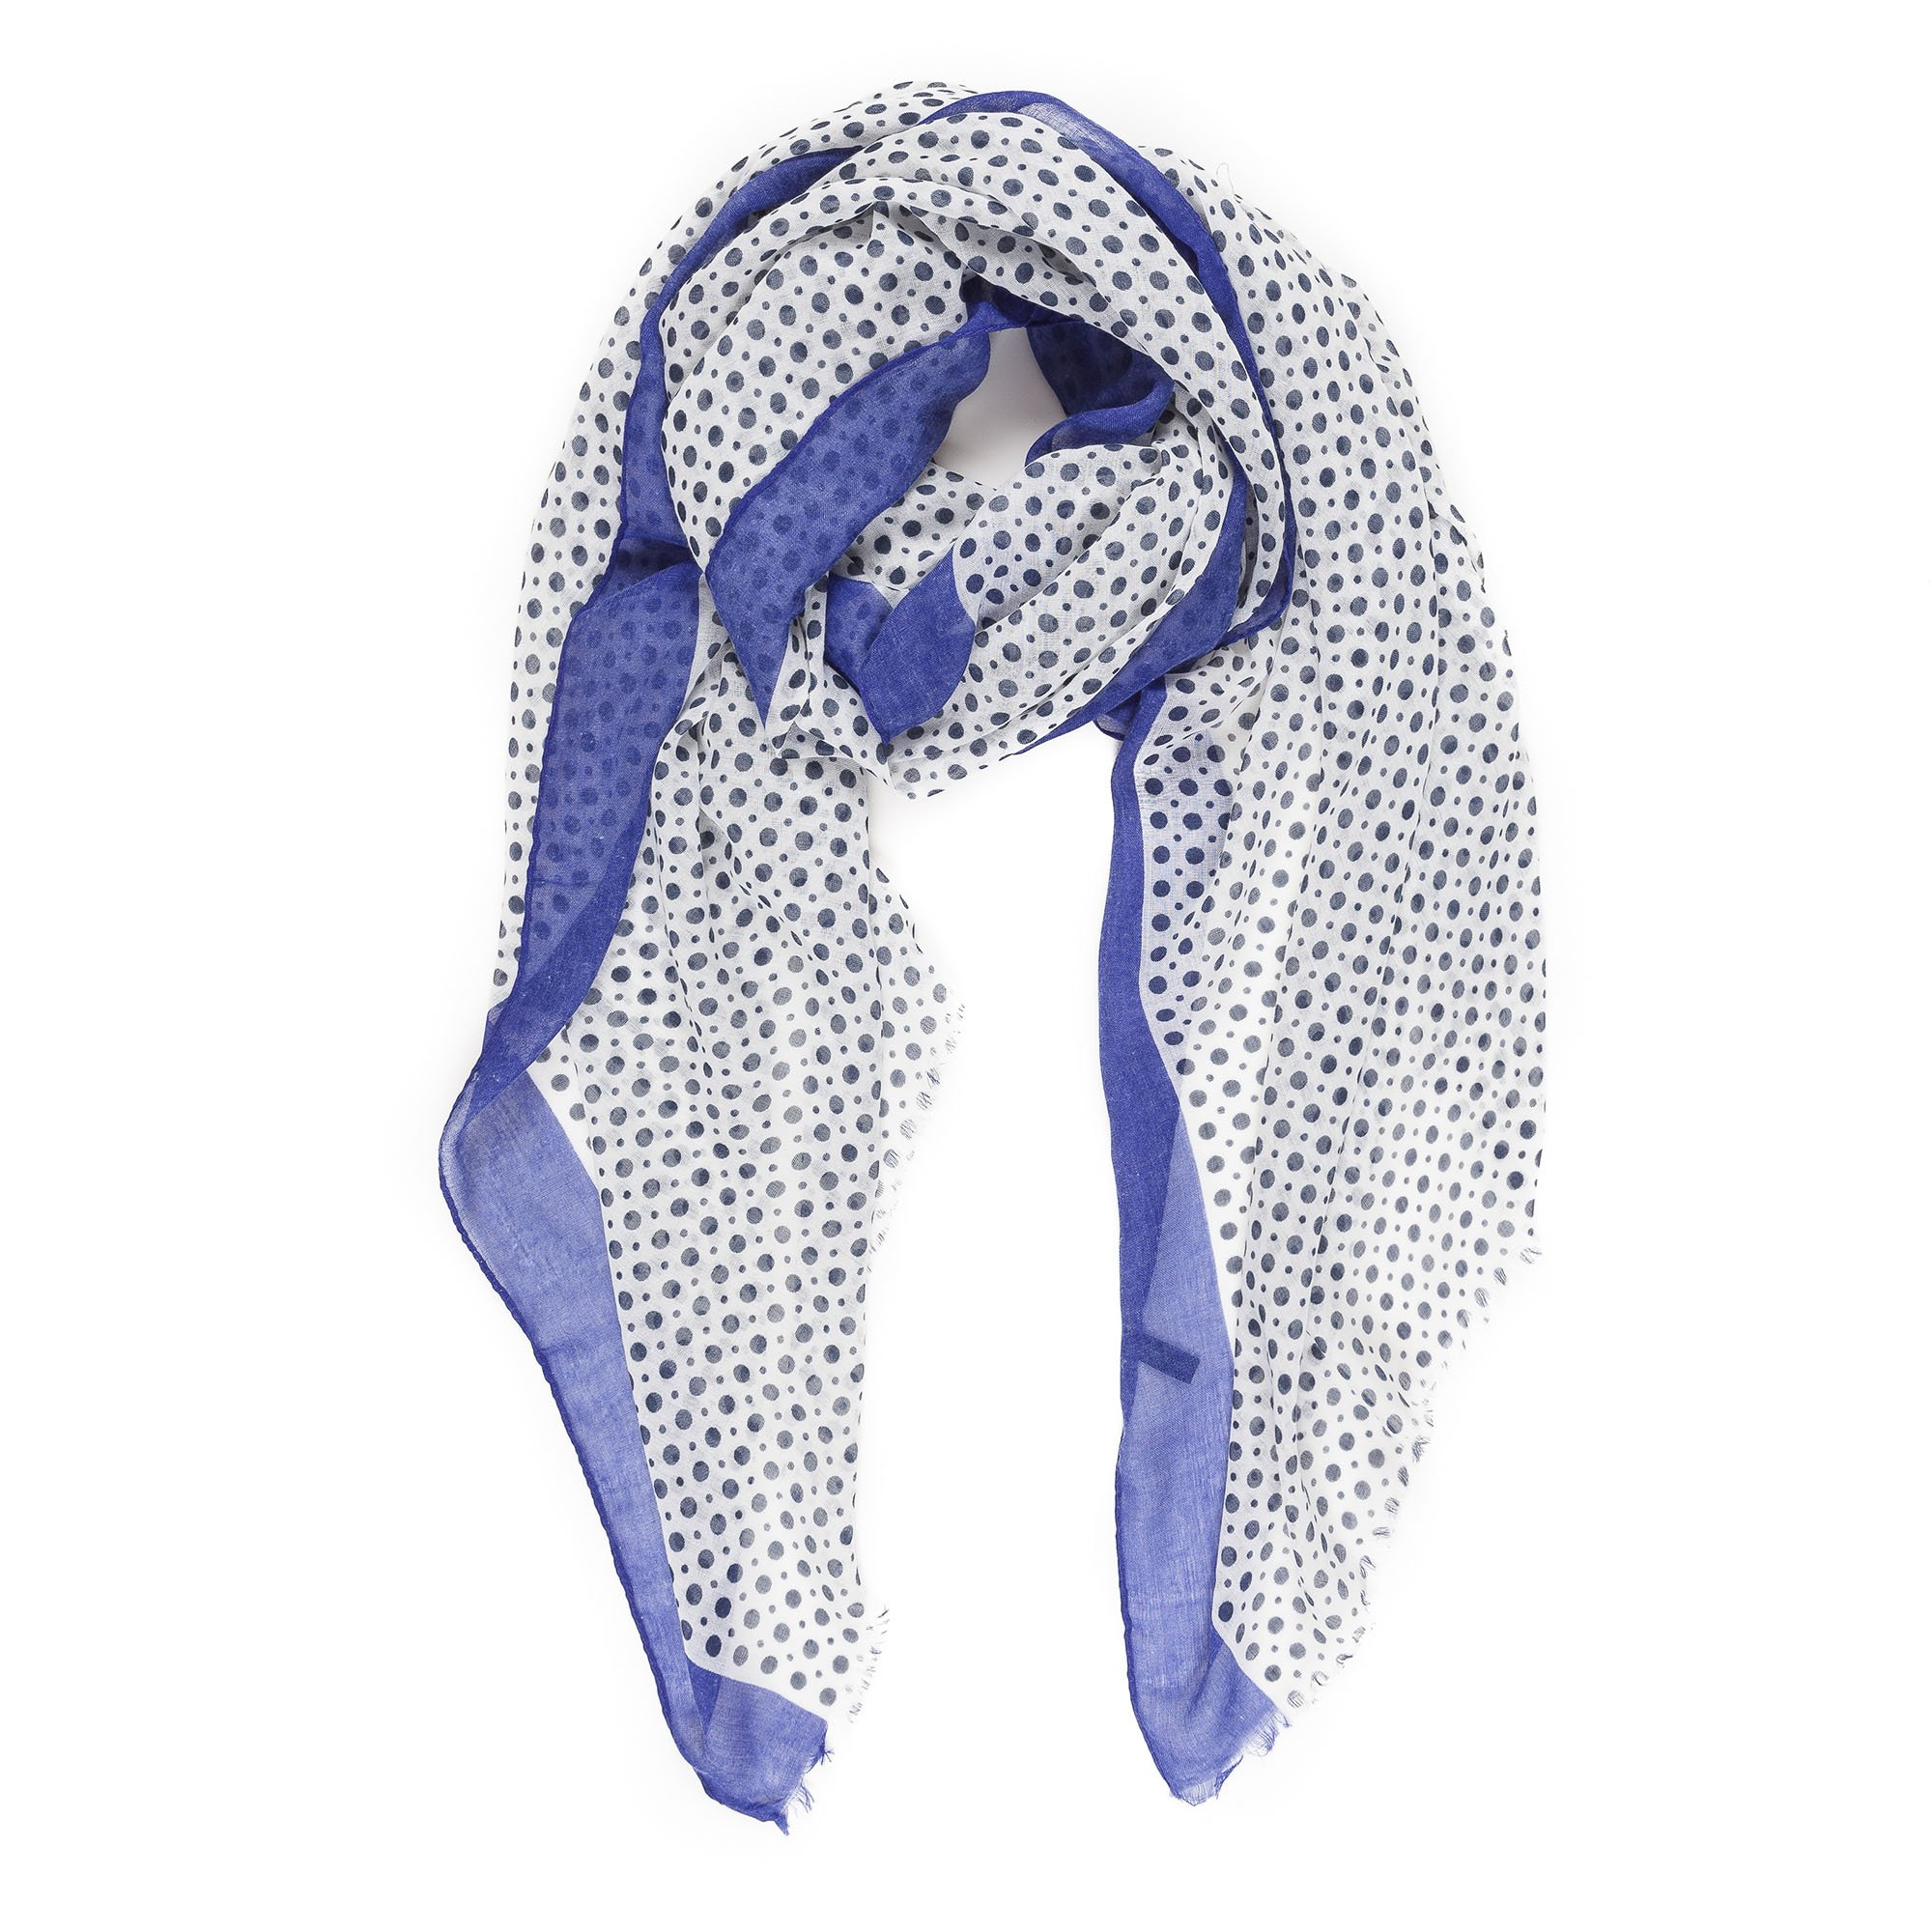 Scarves for Women by MIMOSITO Fashion Lightweight Elegant Geometric Patterned Wrap (Polka Dot-Blue) by MIMOSITO (Image #1)